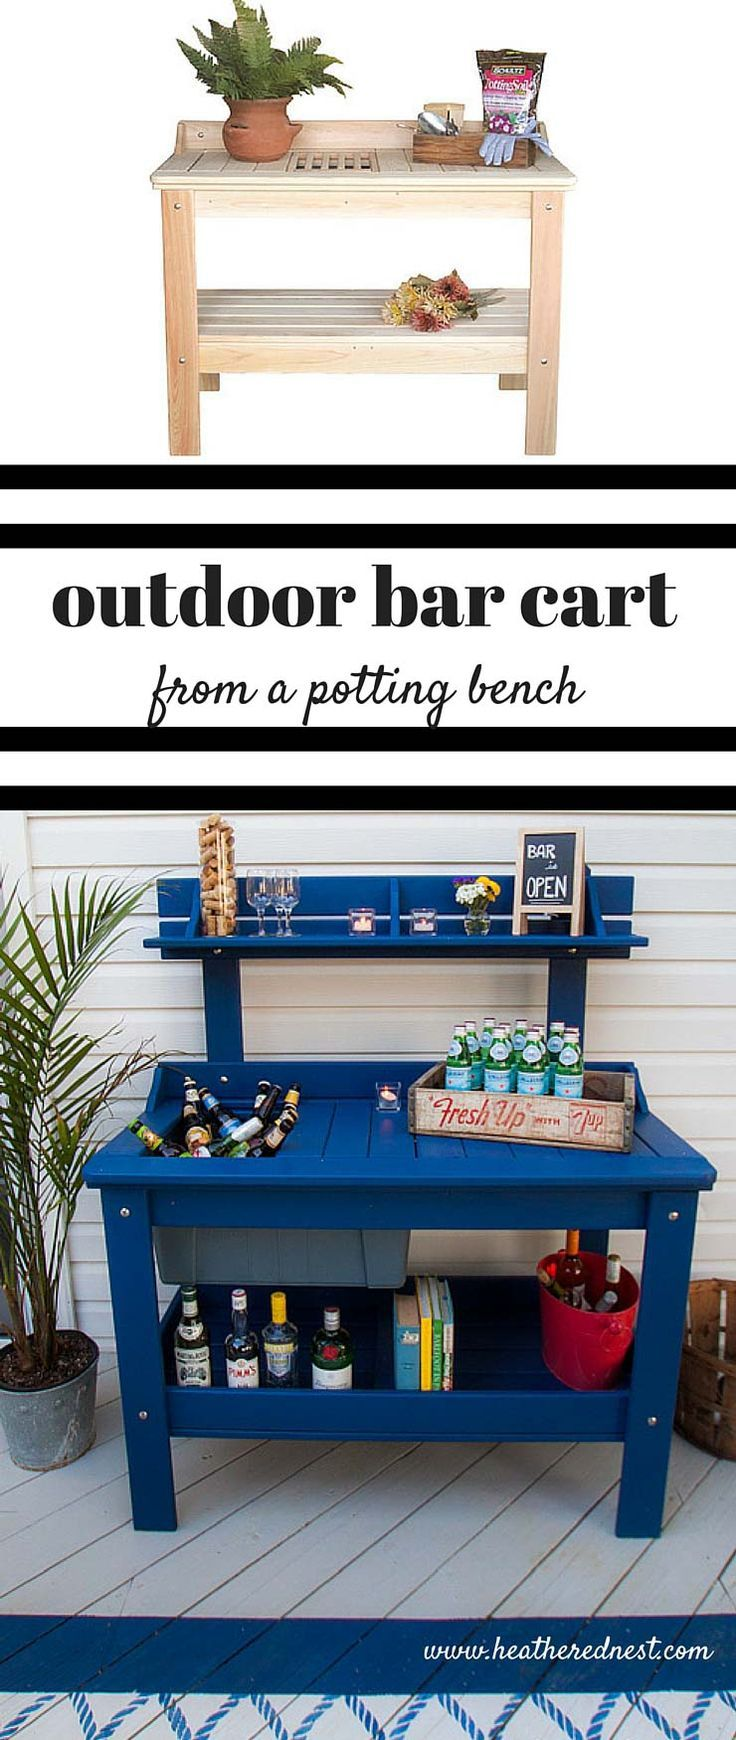 an outdoor potting table can be turned into the patio outdoor bar cart! Check out this one from http://www.heatherednest.com what a fun use for this type of piece!!